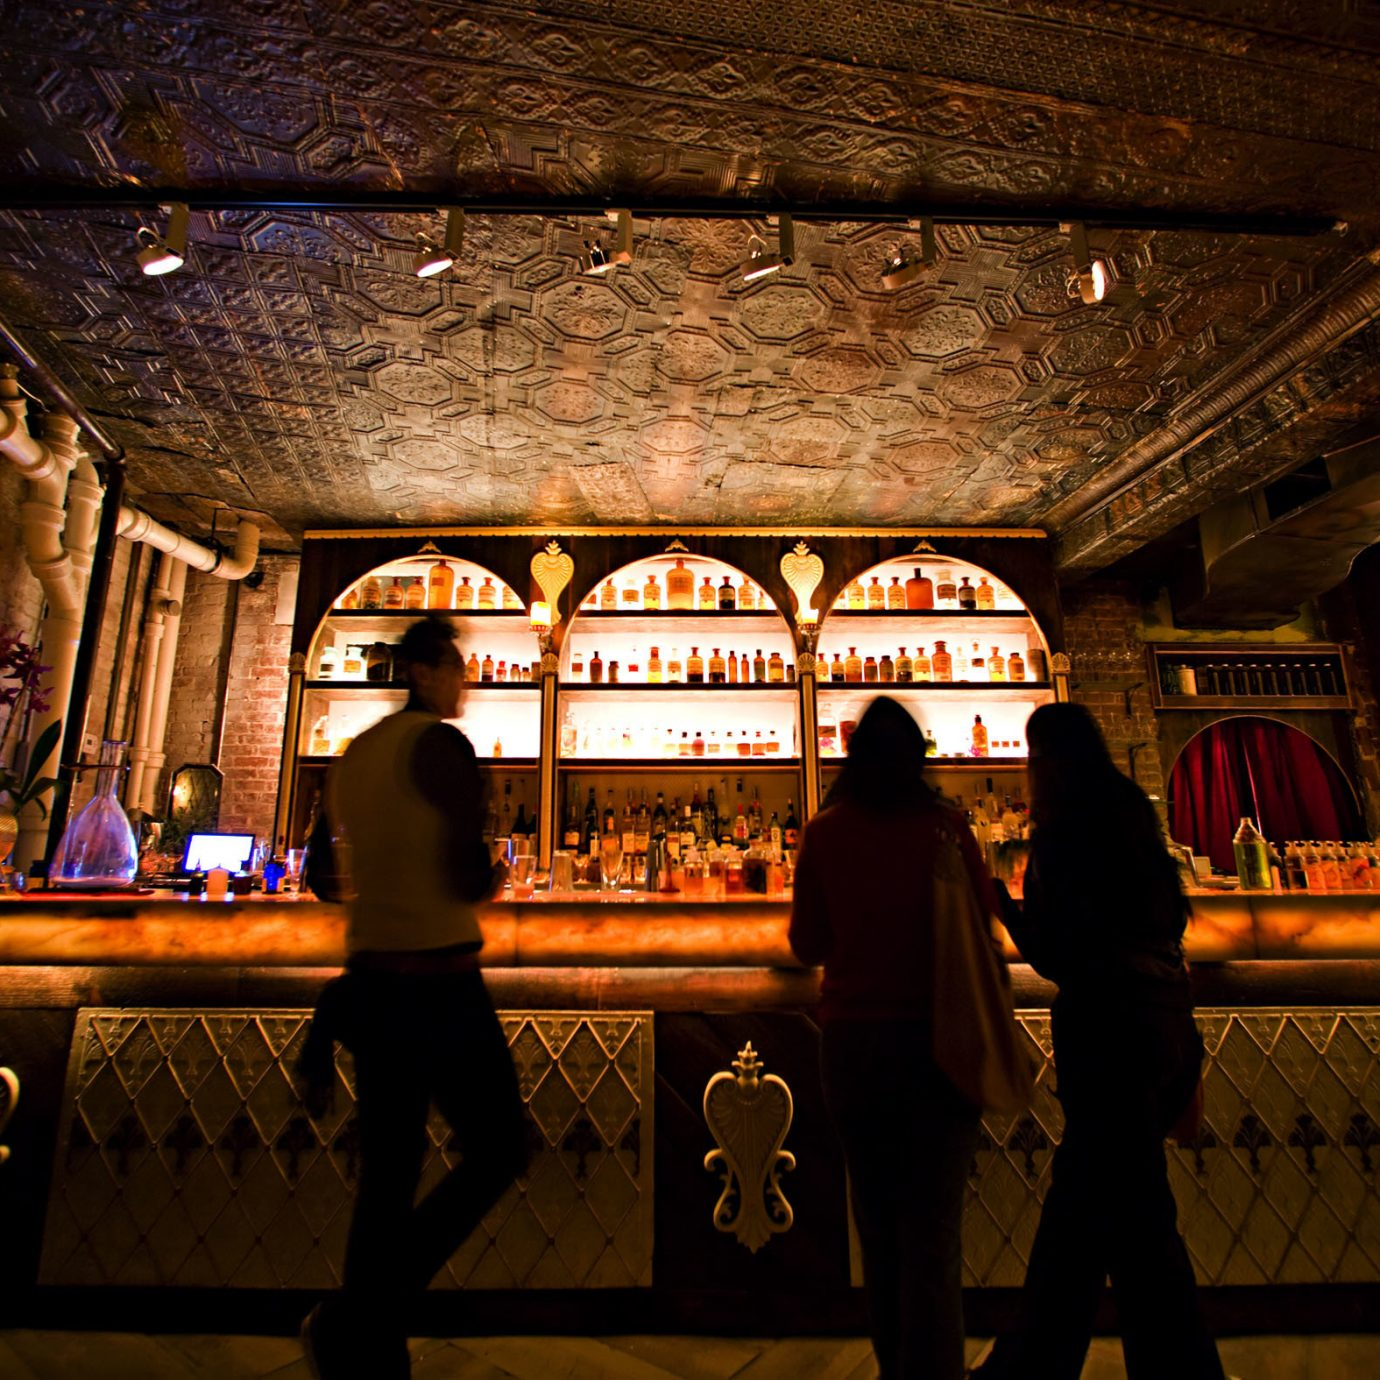 Food + Drink Romance person indoor ceiling night Bar evening